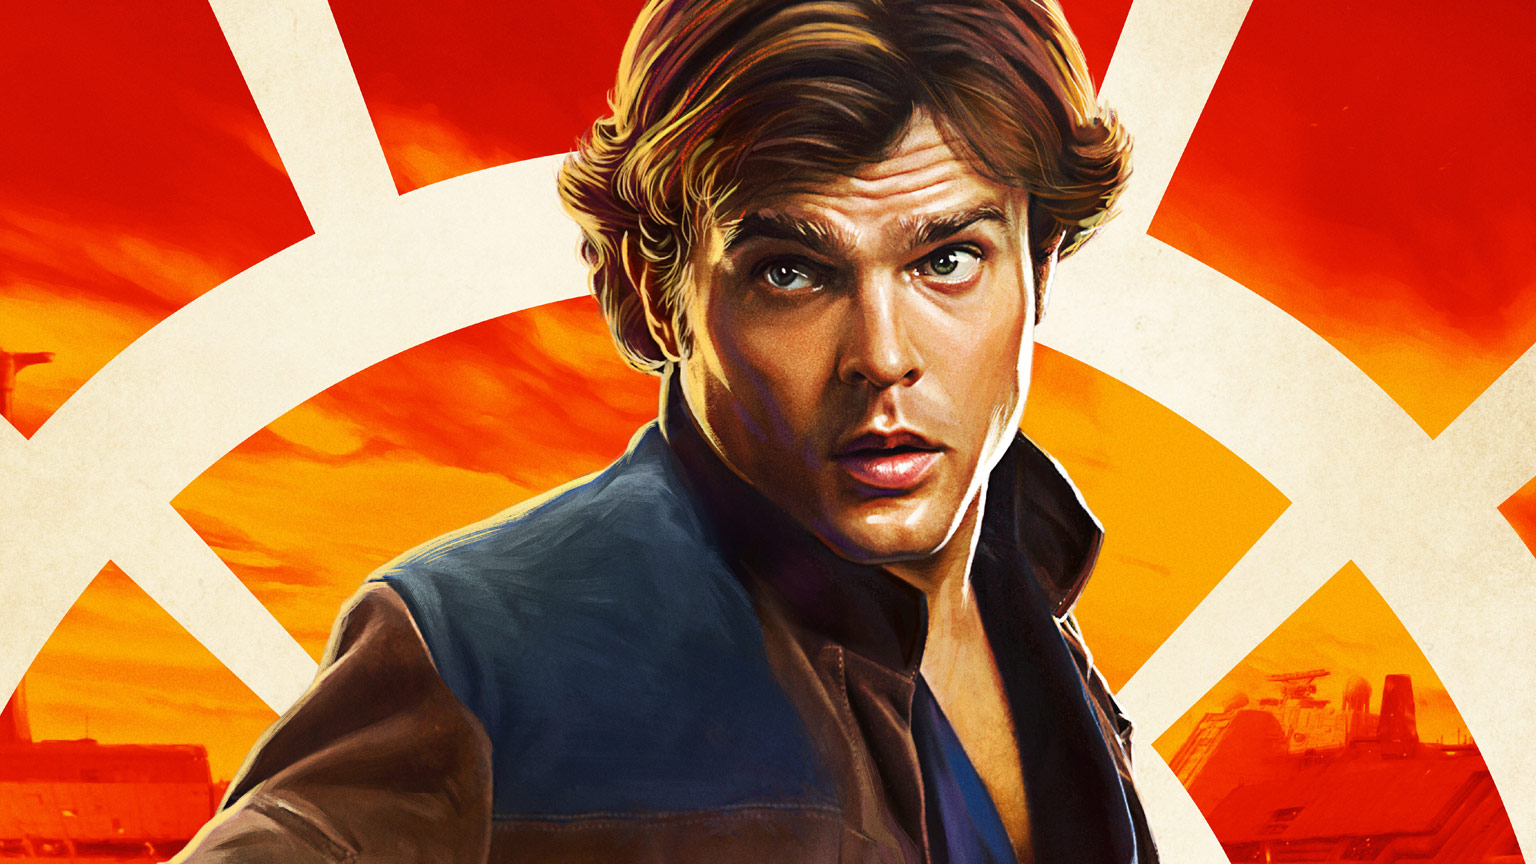 Meet the Crew in These New Solo: A Star Wars Story Character